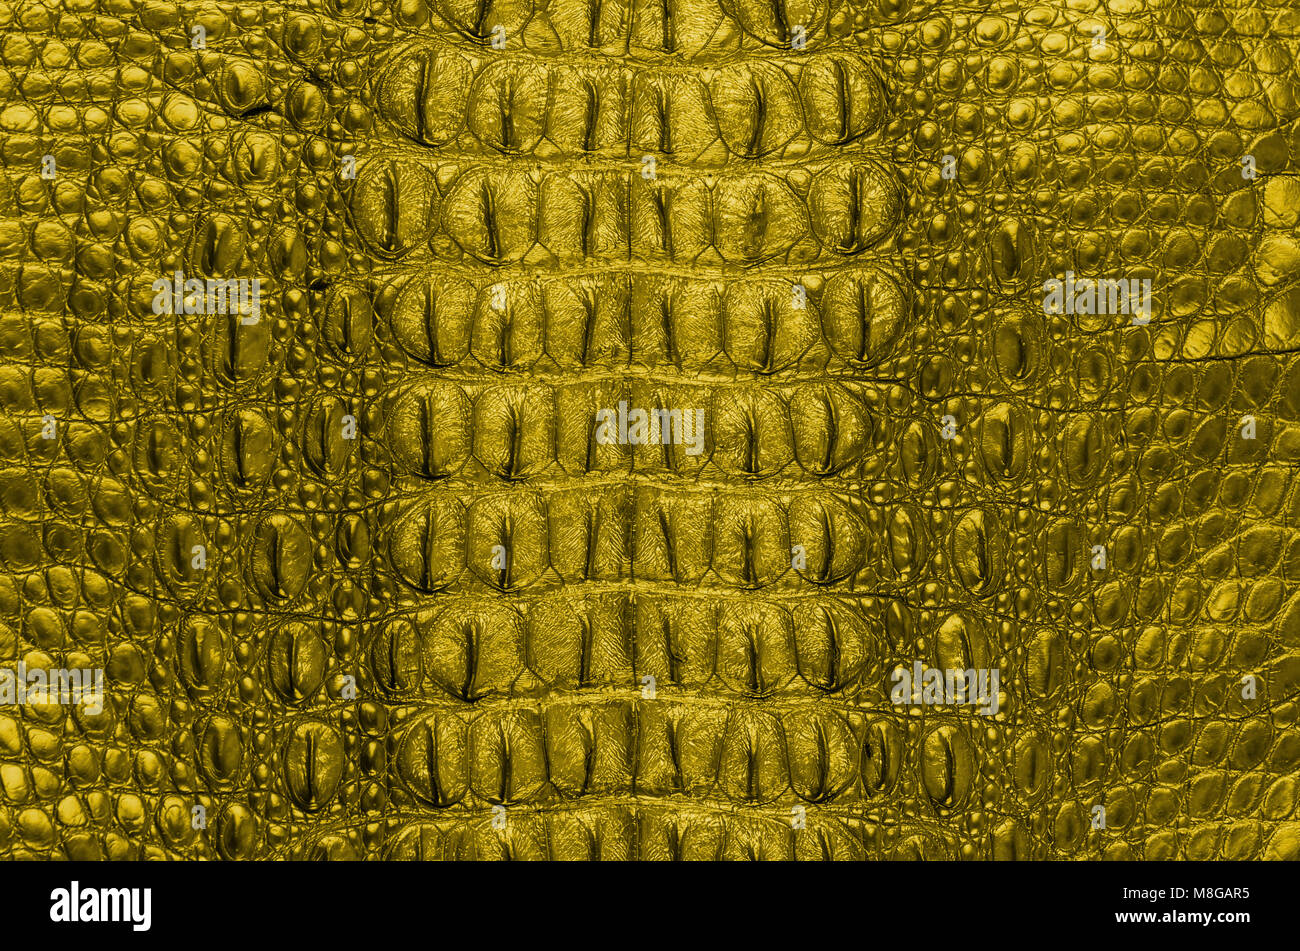 Snake Print Bag Stock Photos & Snake Print Bag Stock Images - Alamy